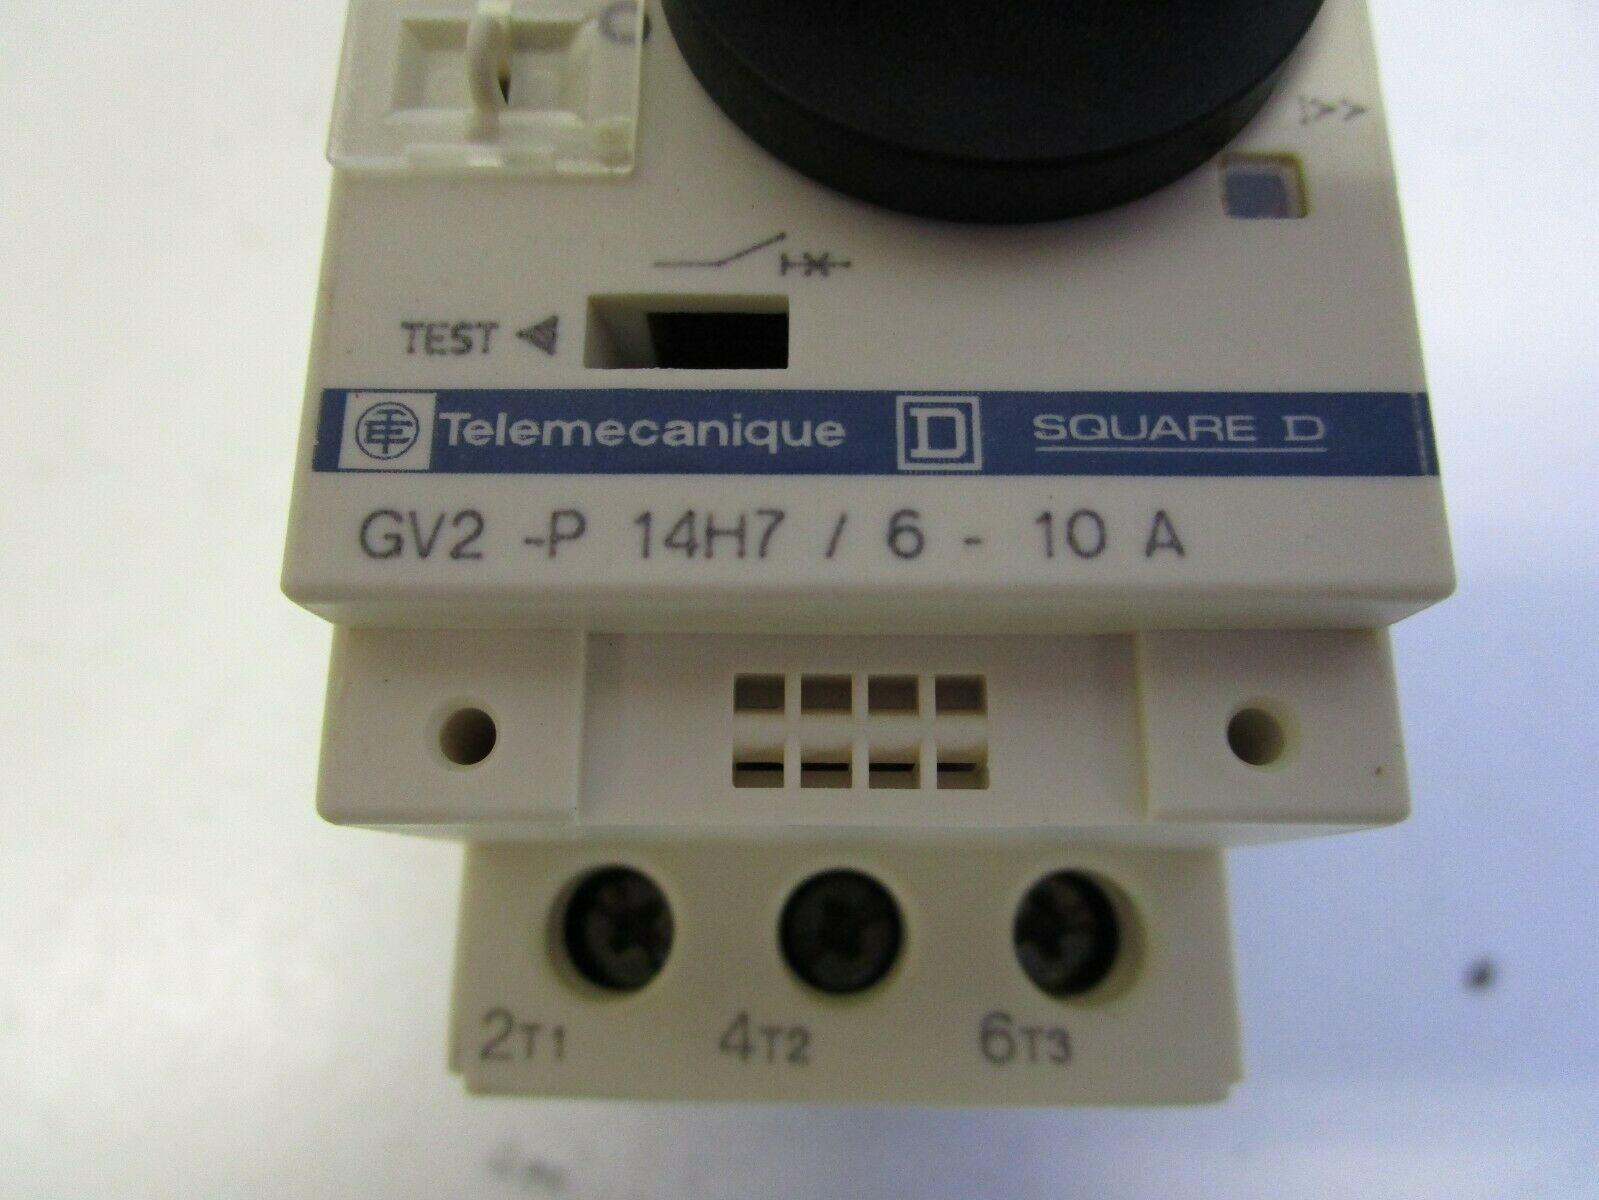 TELEMECANIQUE 6-10A MANUAL MOTOR STARTER /& PROTECTOR GV2-P14H7 *PZB*